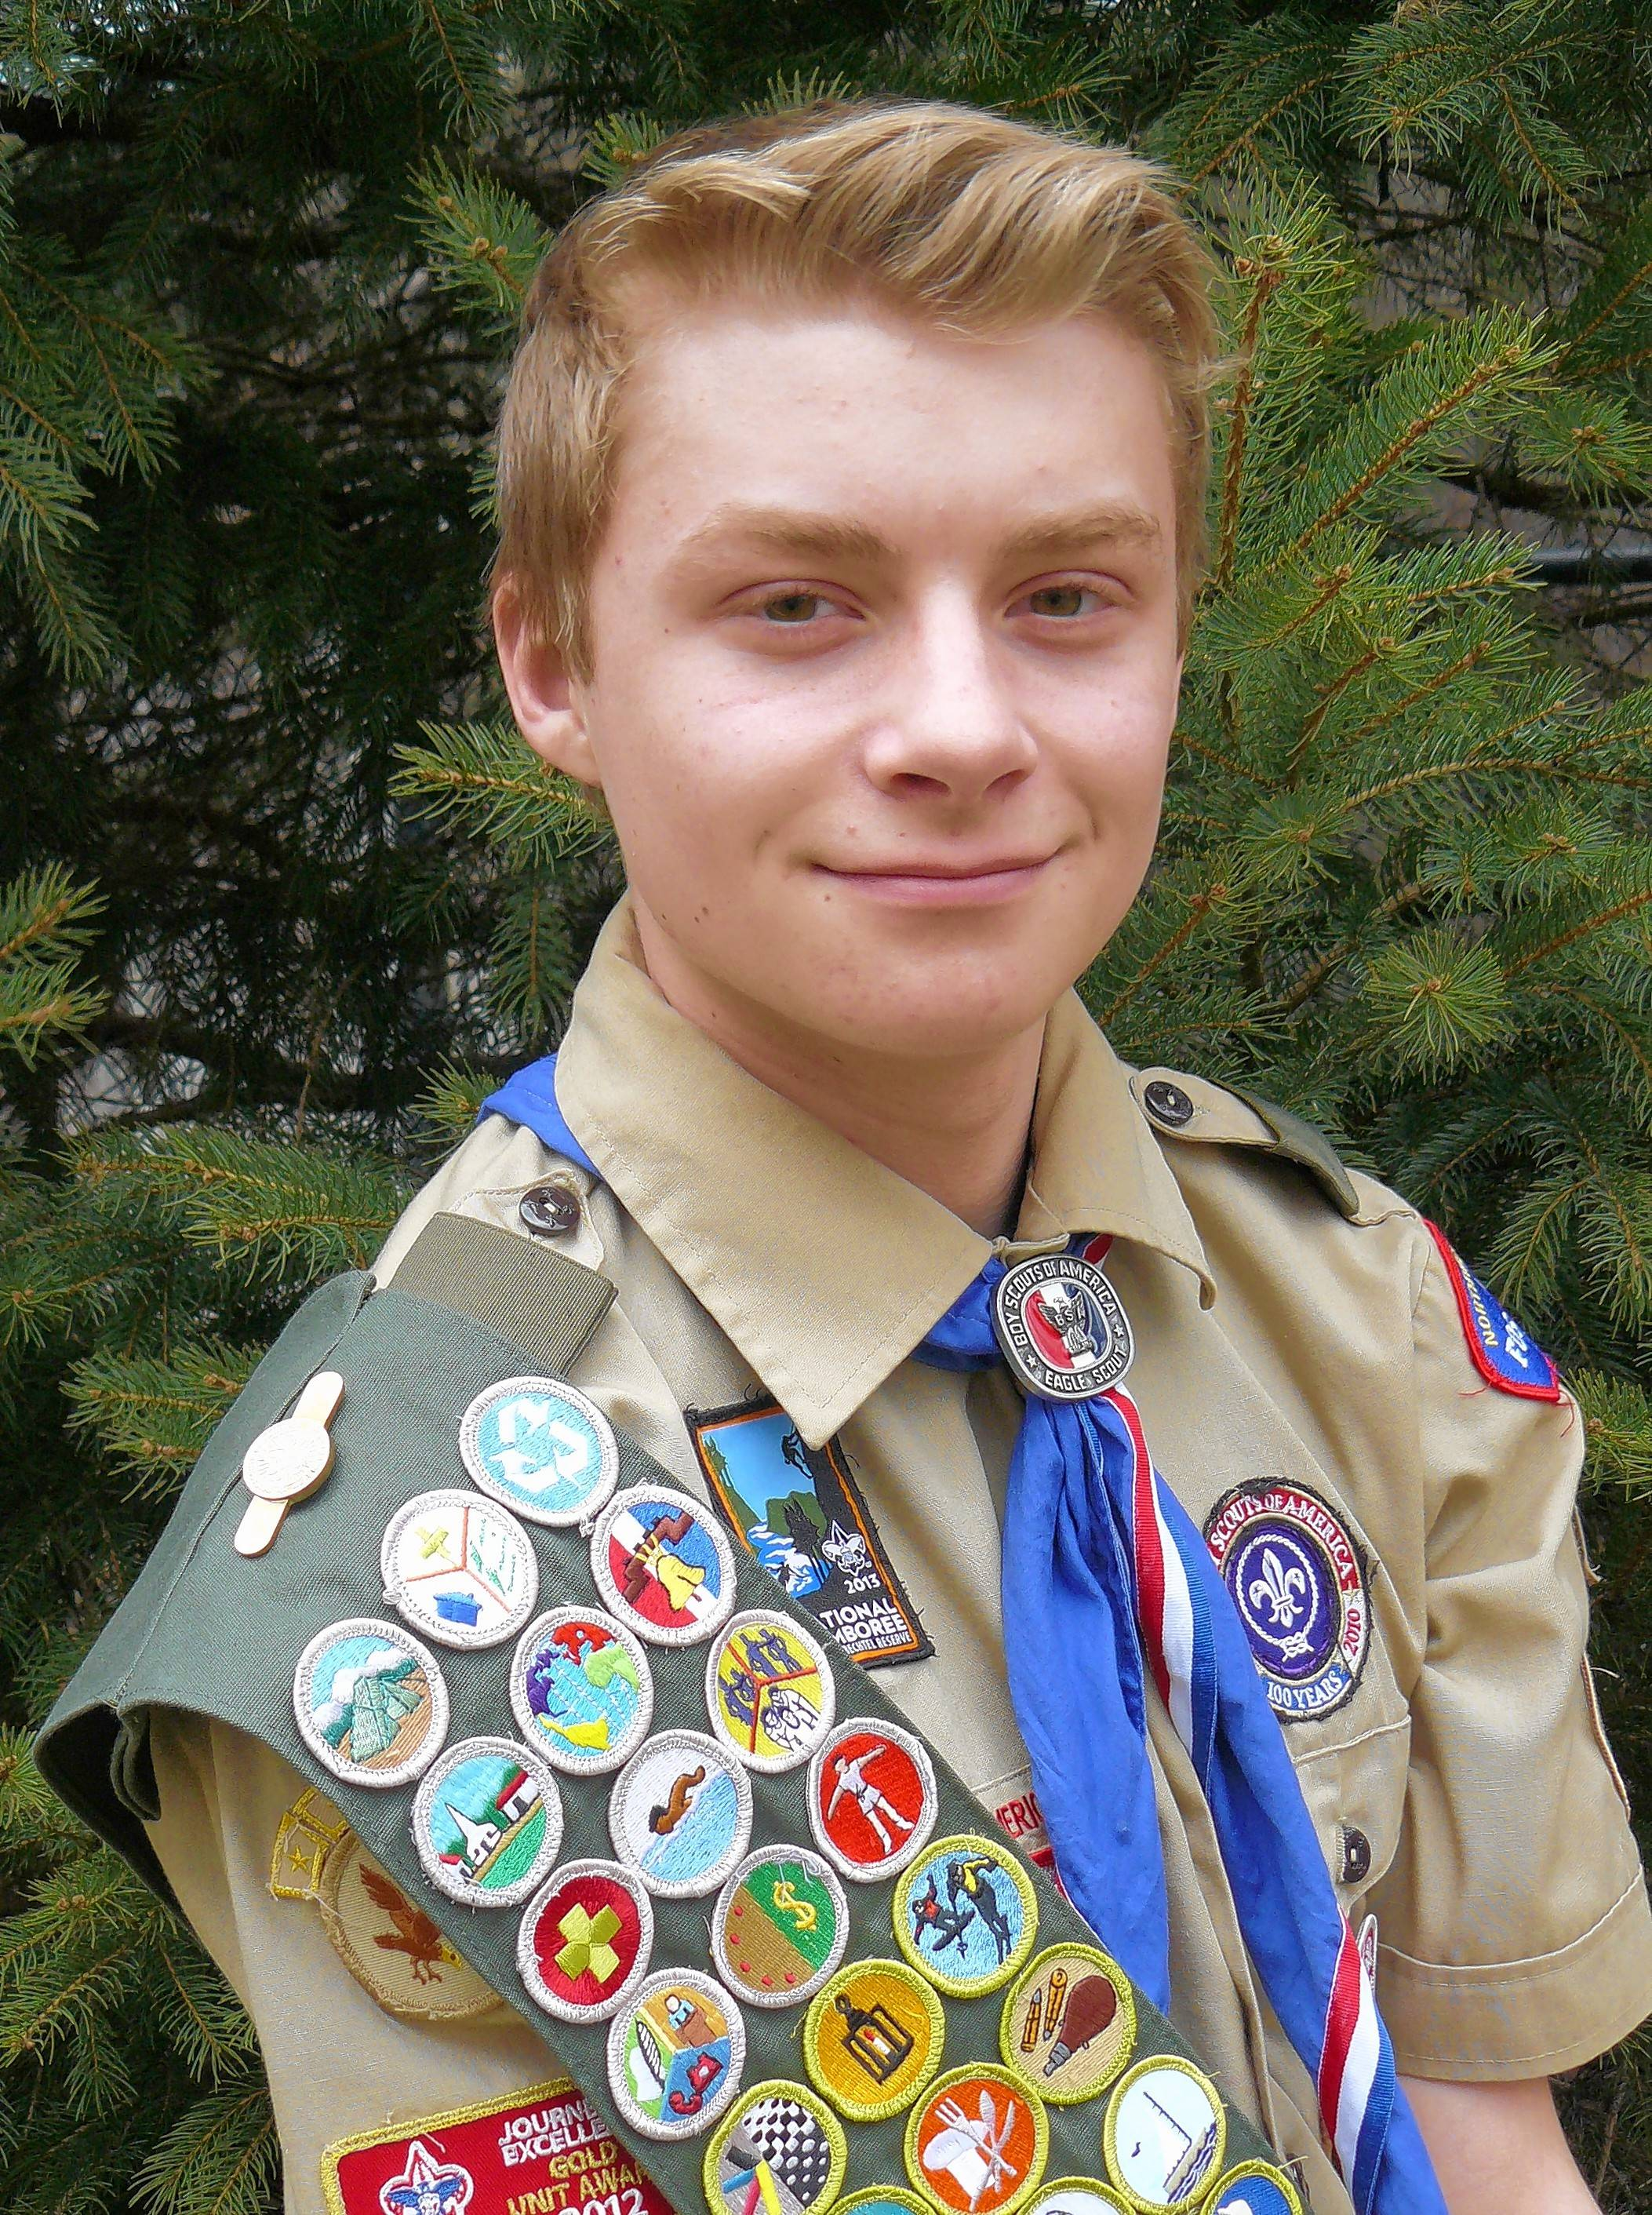 Hoffman Estates resident Tyler Matuszczak earned the rank of Eagle Scout at age 15.